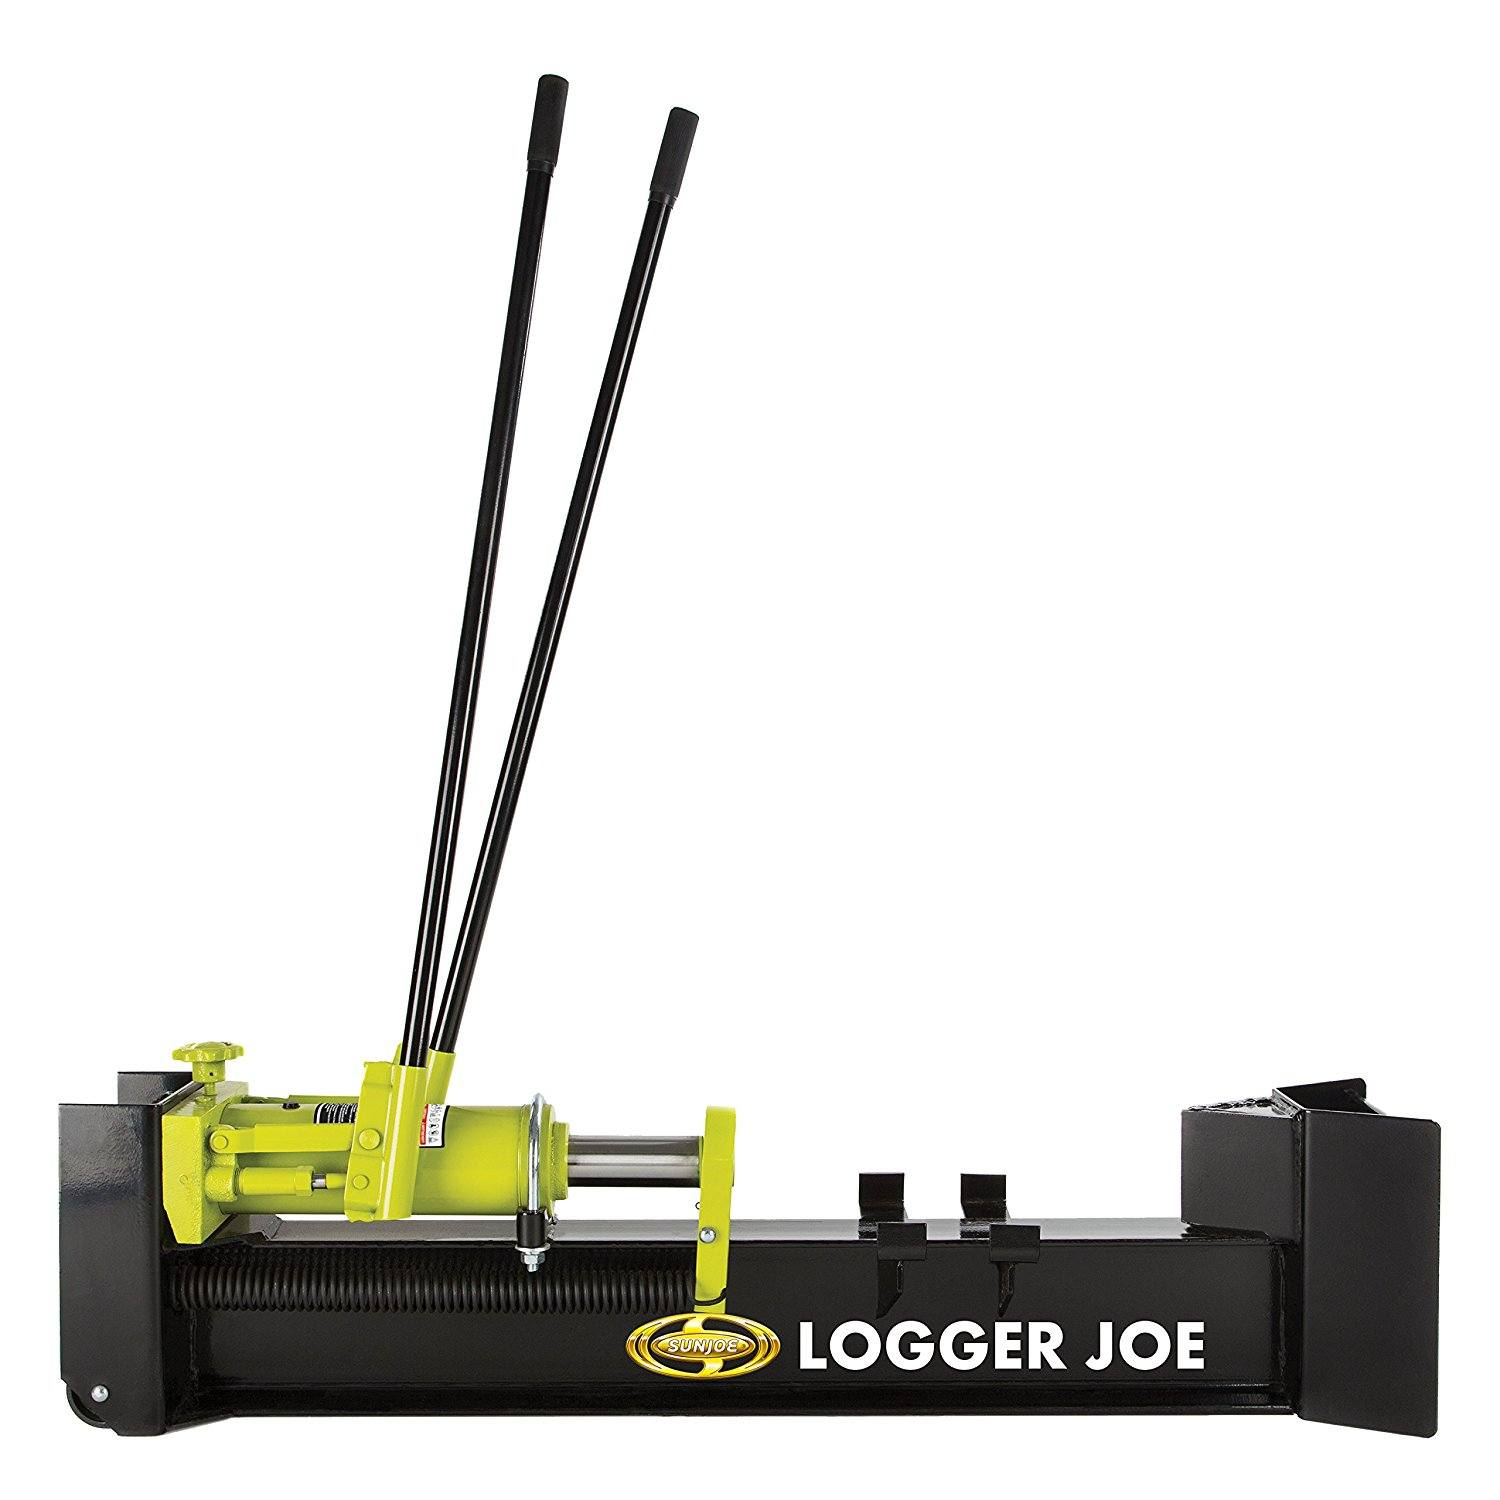 Sun Joe LJ10M Logger Joe Manual Log Splitter